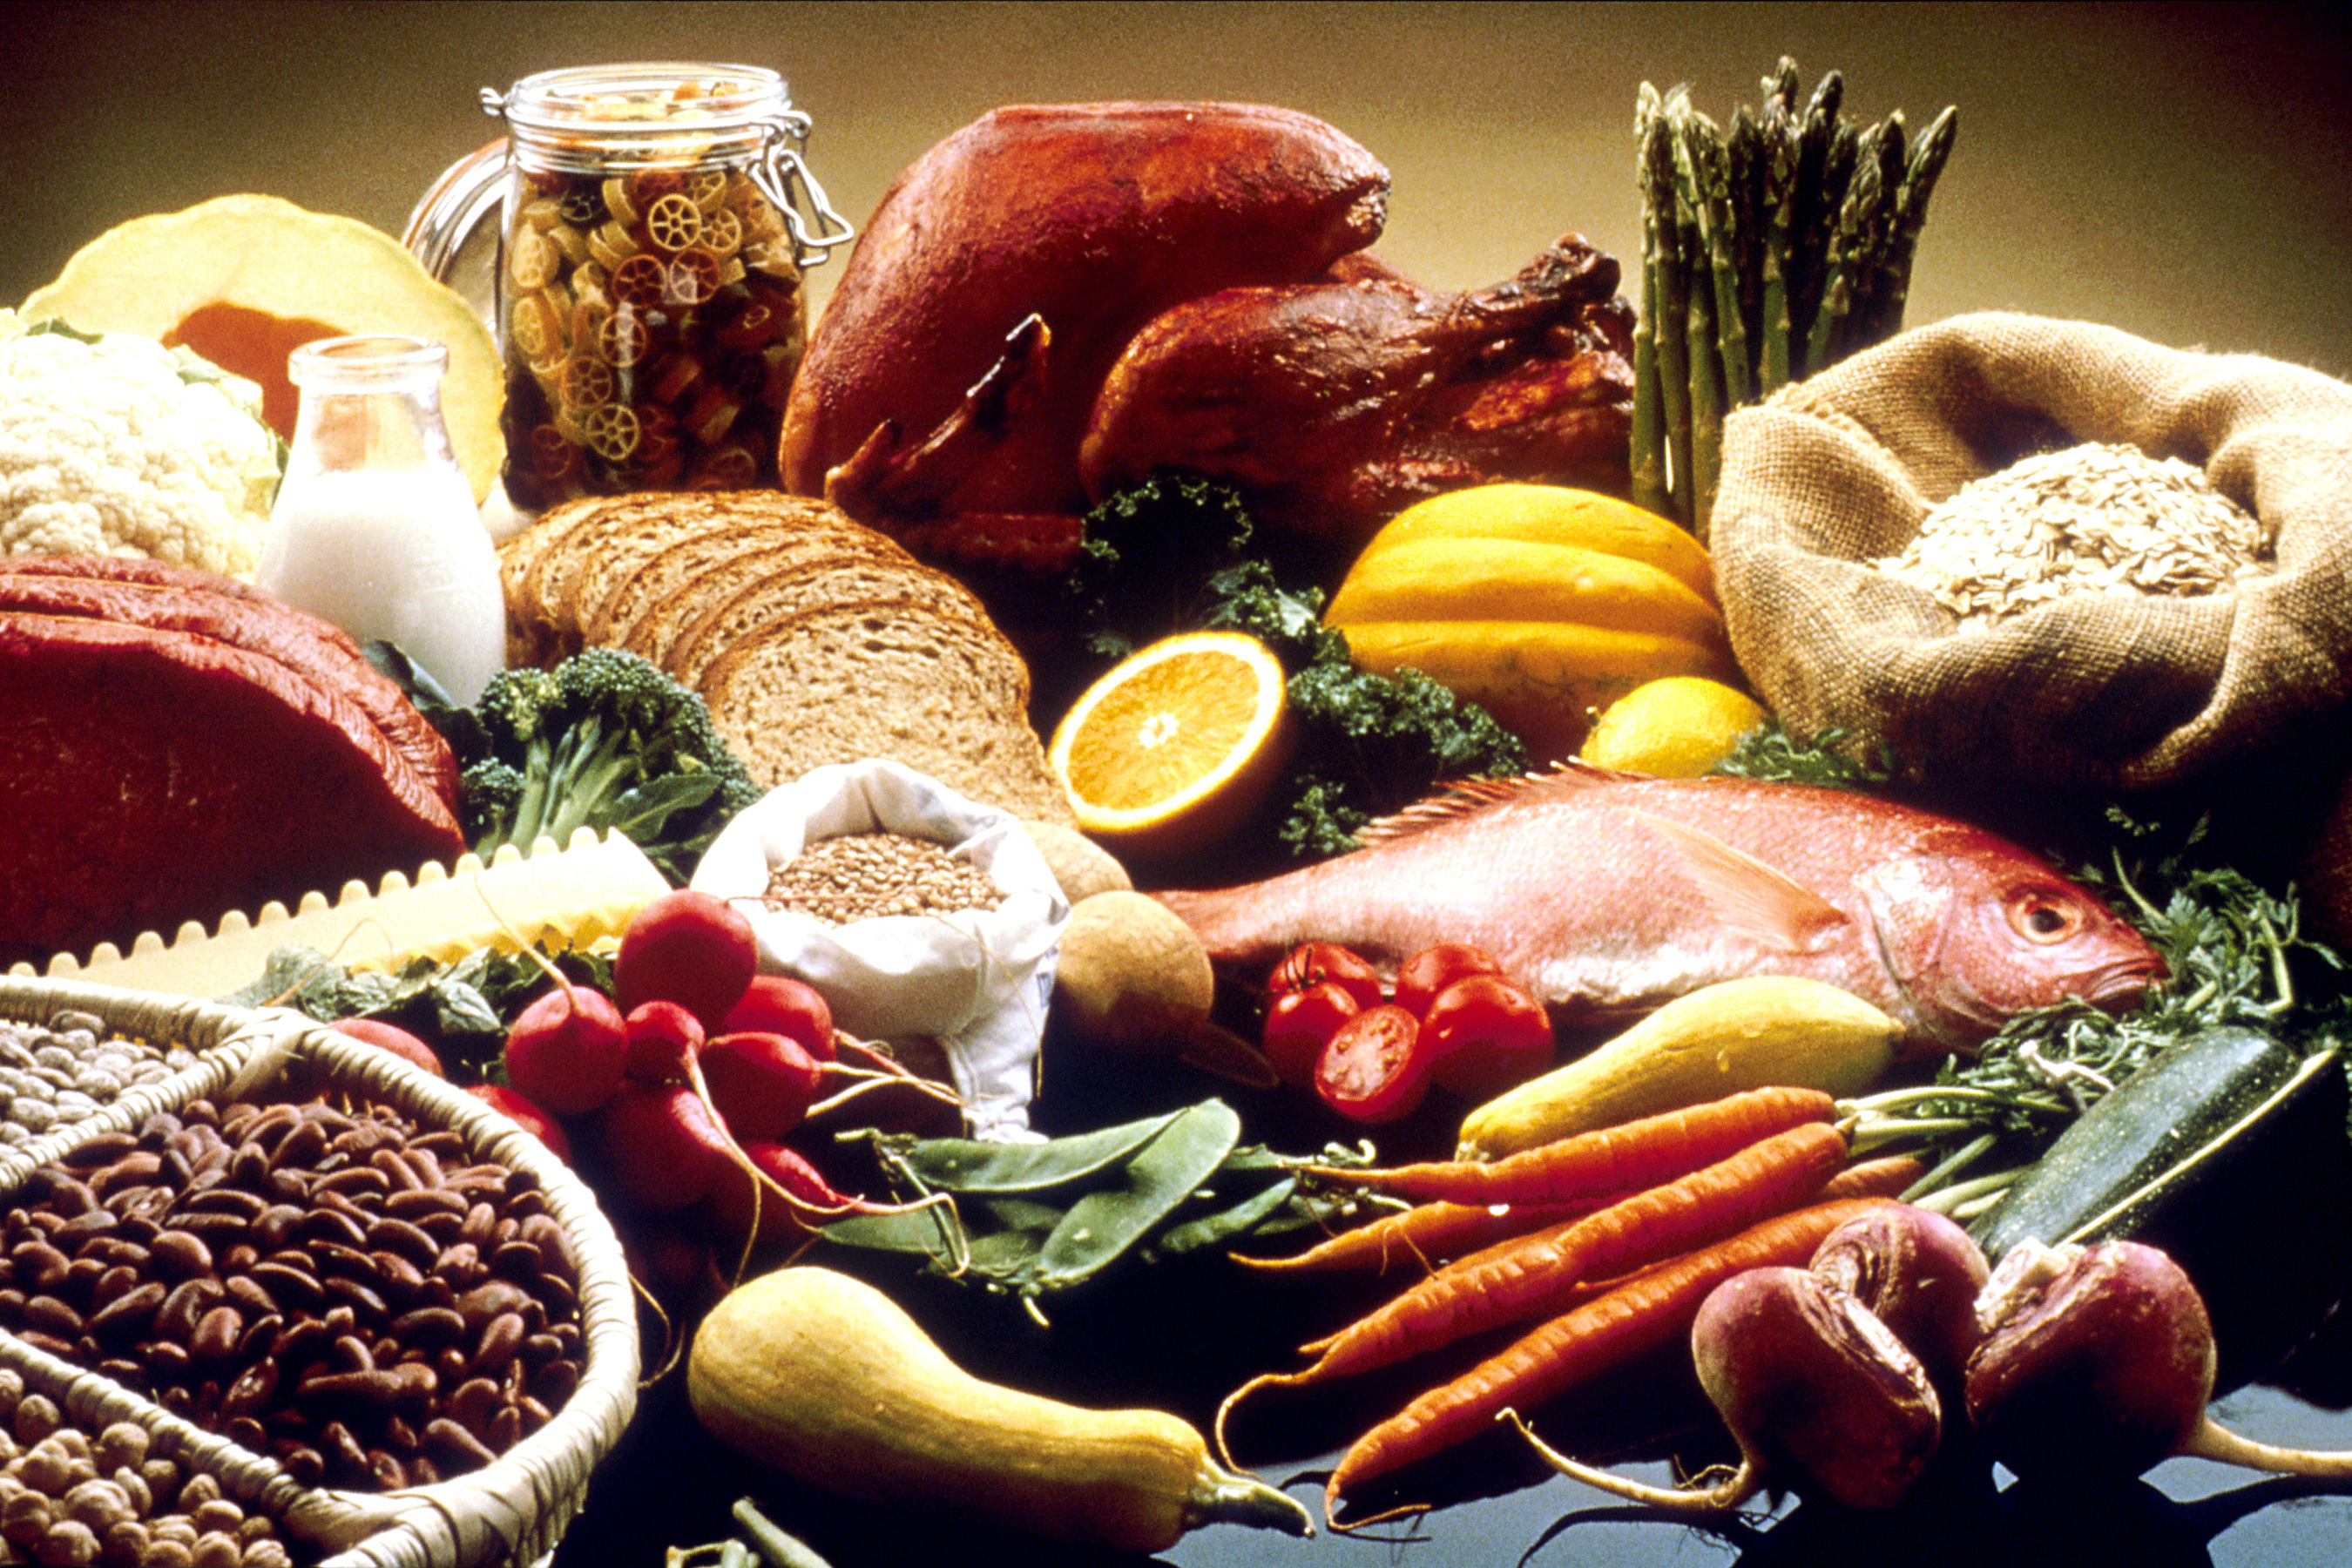 nutritional food sources